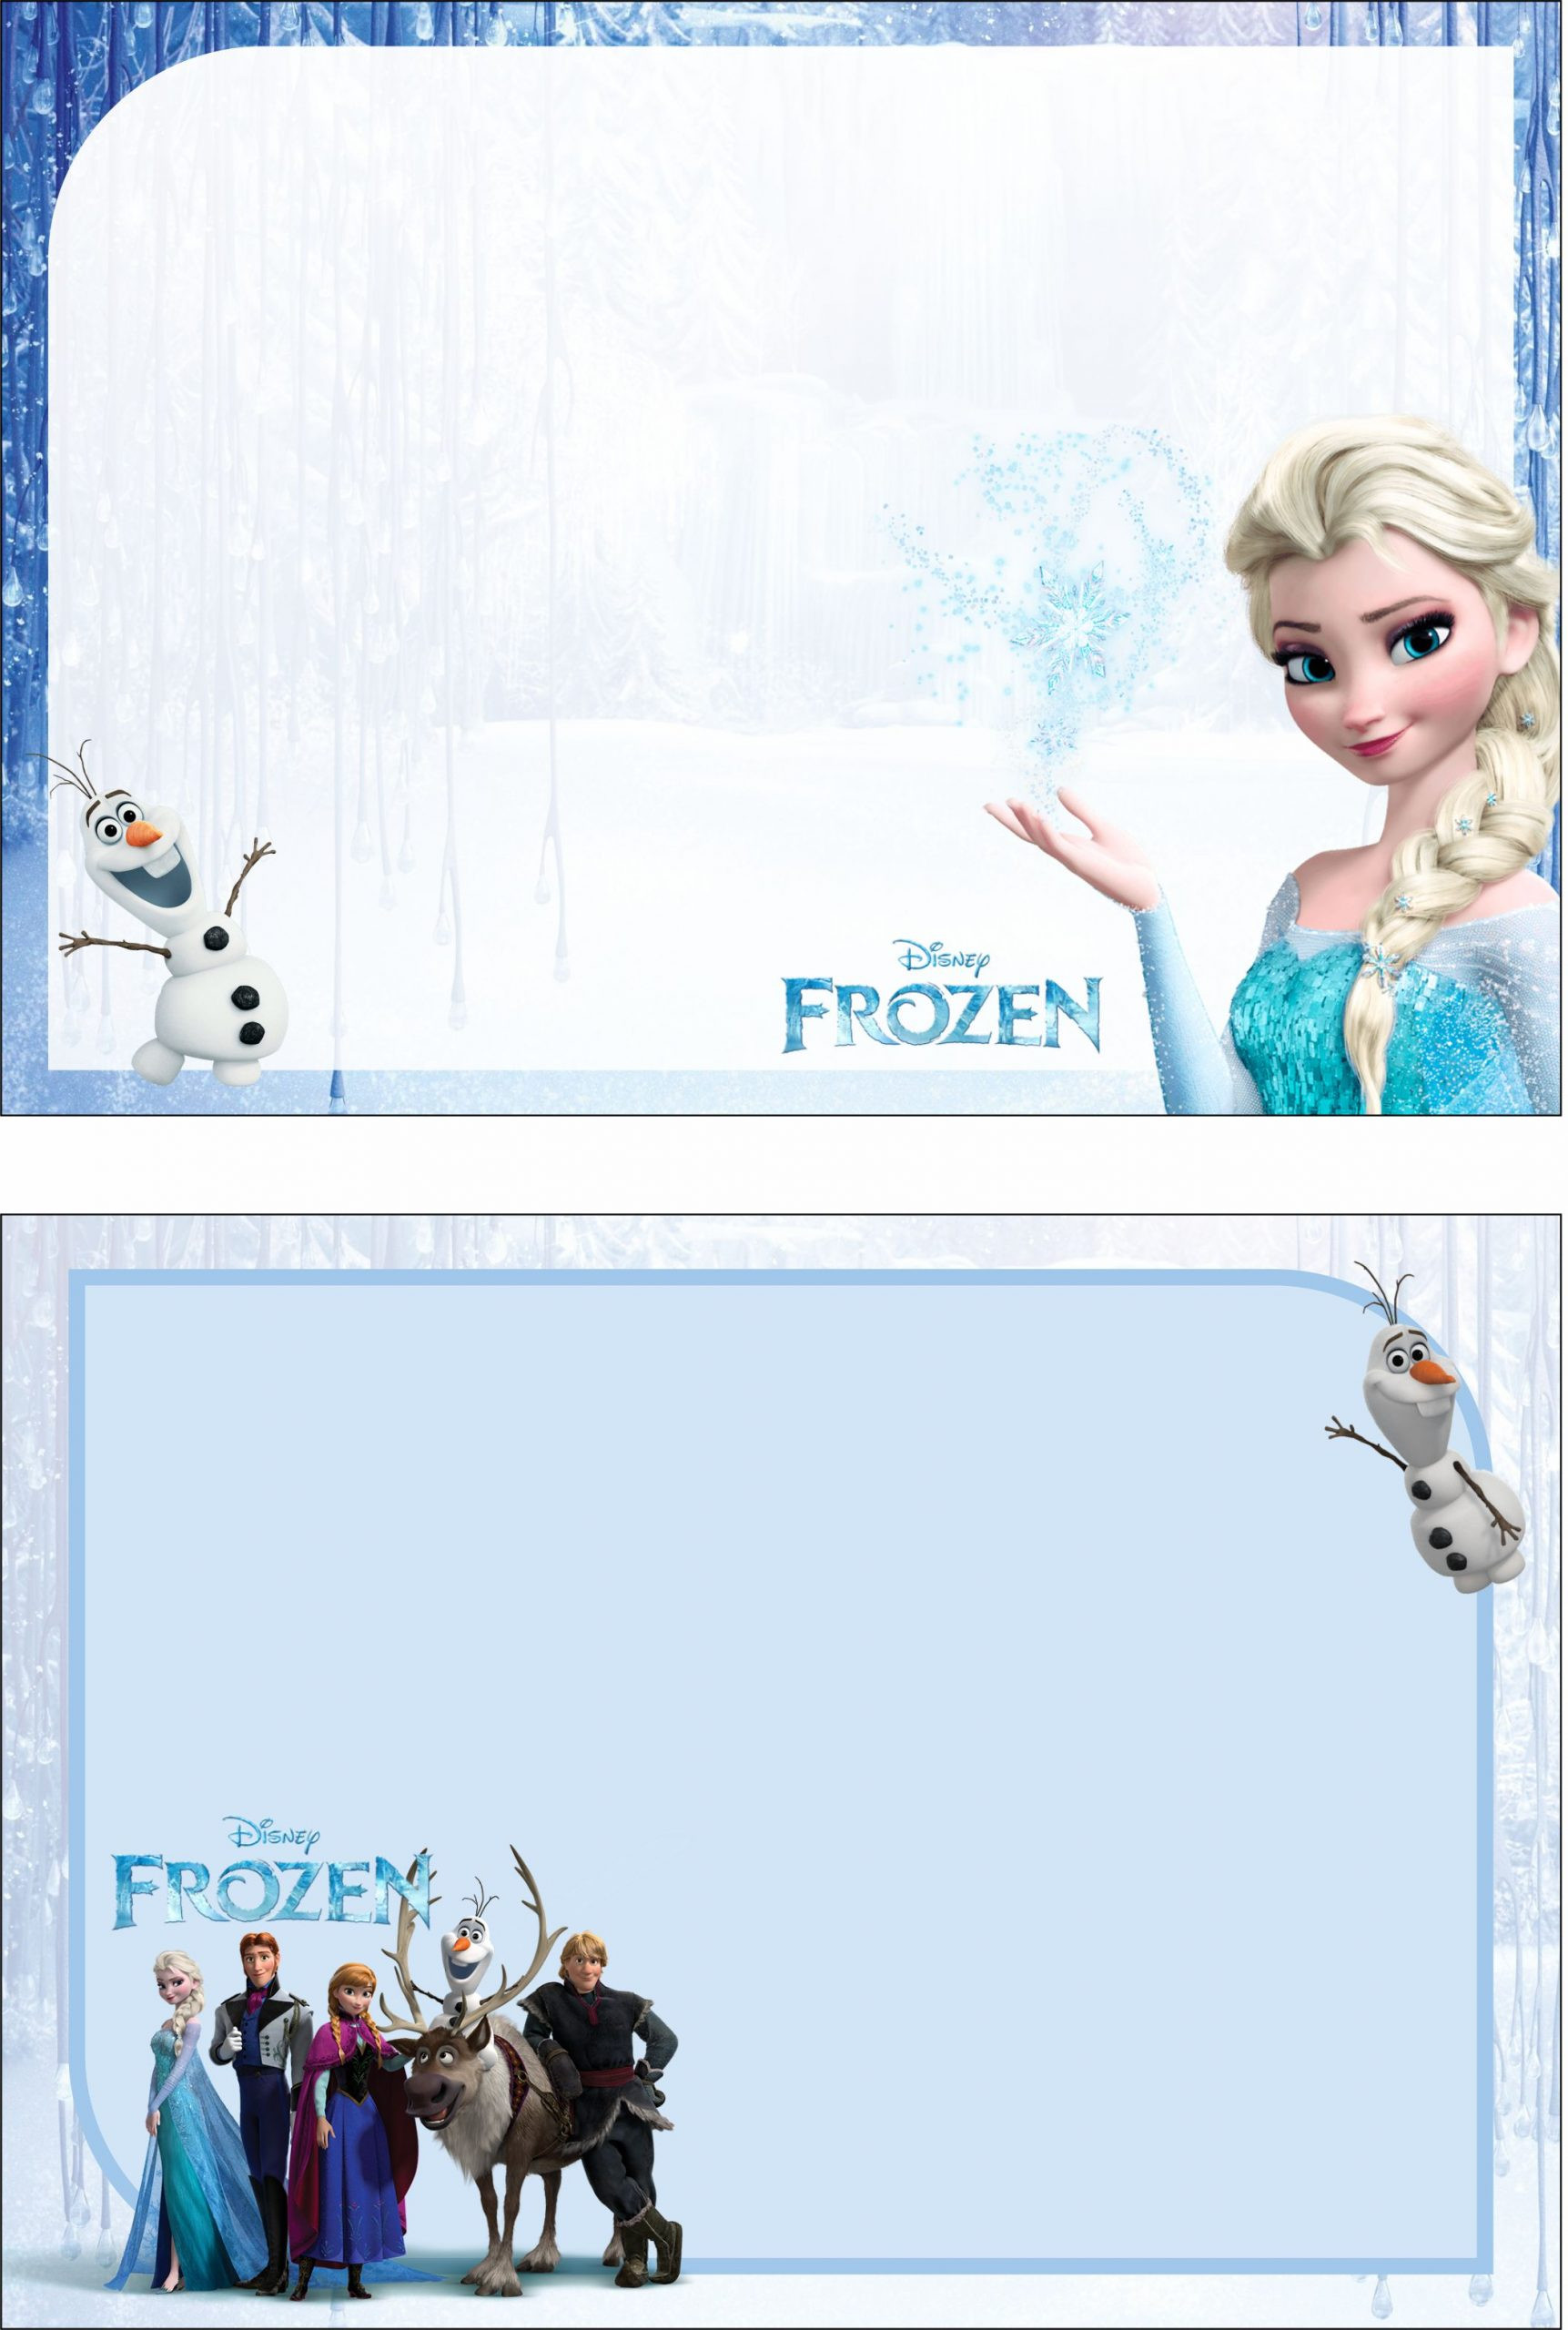 Frozen Printable Invitation Free – Frozen 2 Birthday Party Kit Templates – Free